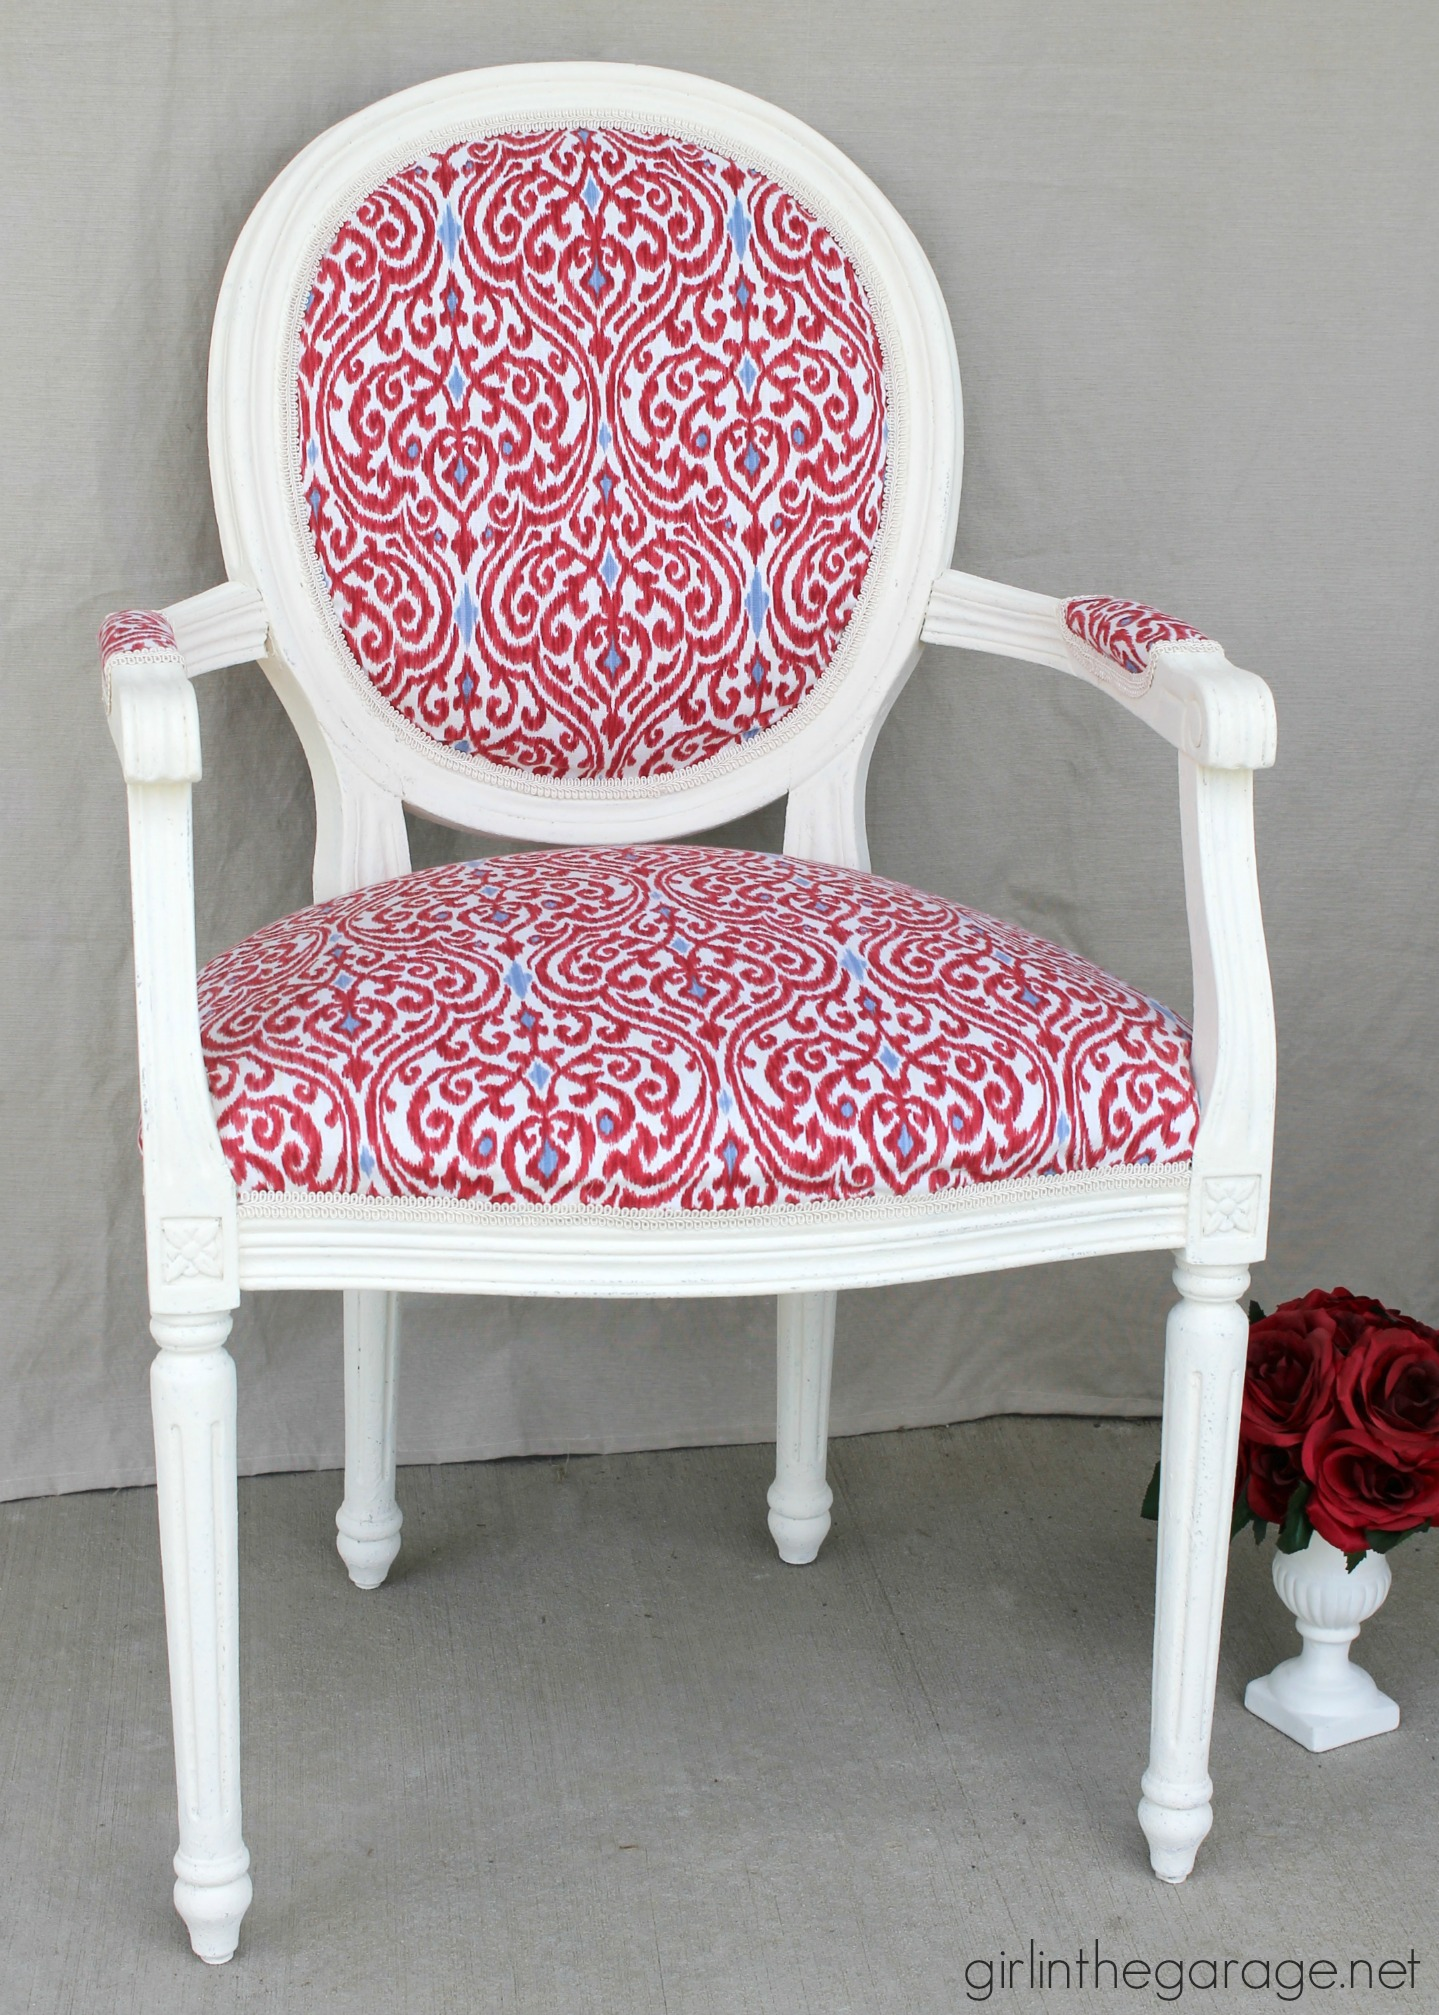 Elegant DIY Reupholstered Chair Makeover And Lessons Learned   By Girl In The Garage